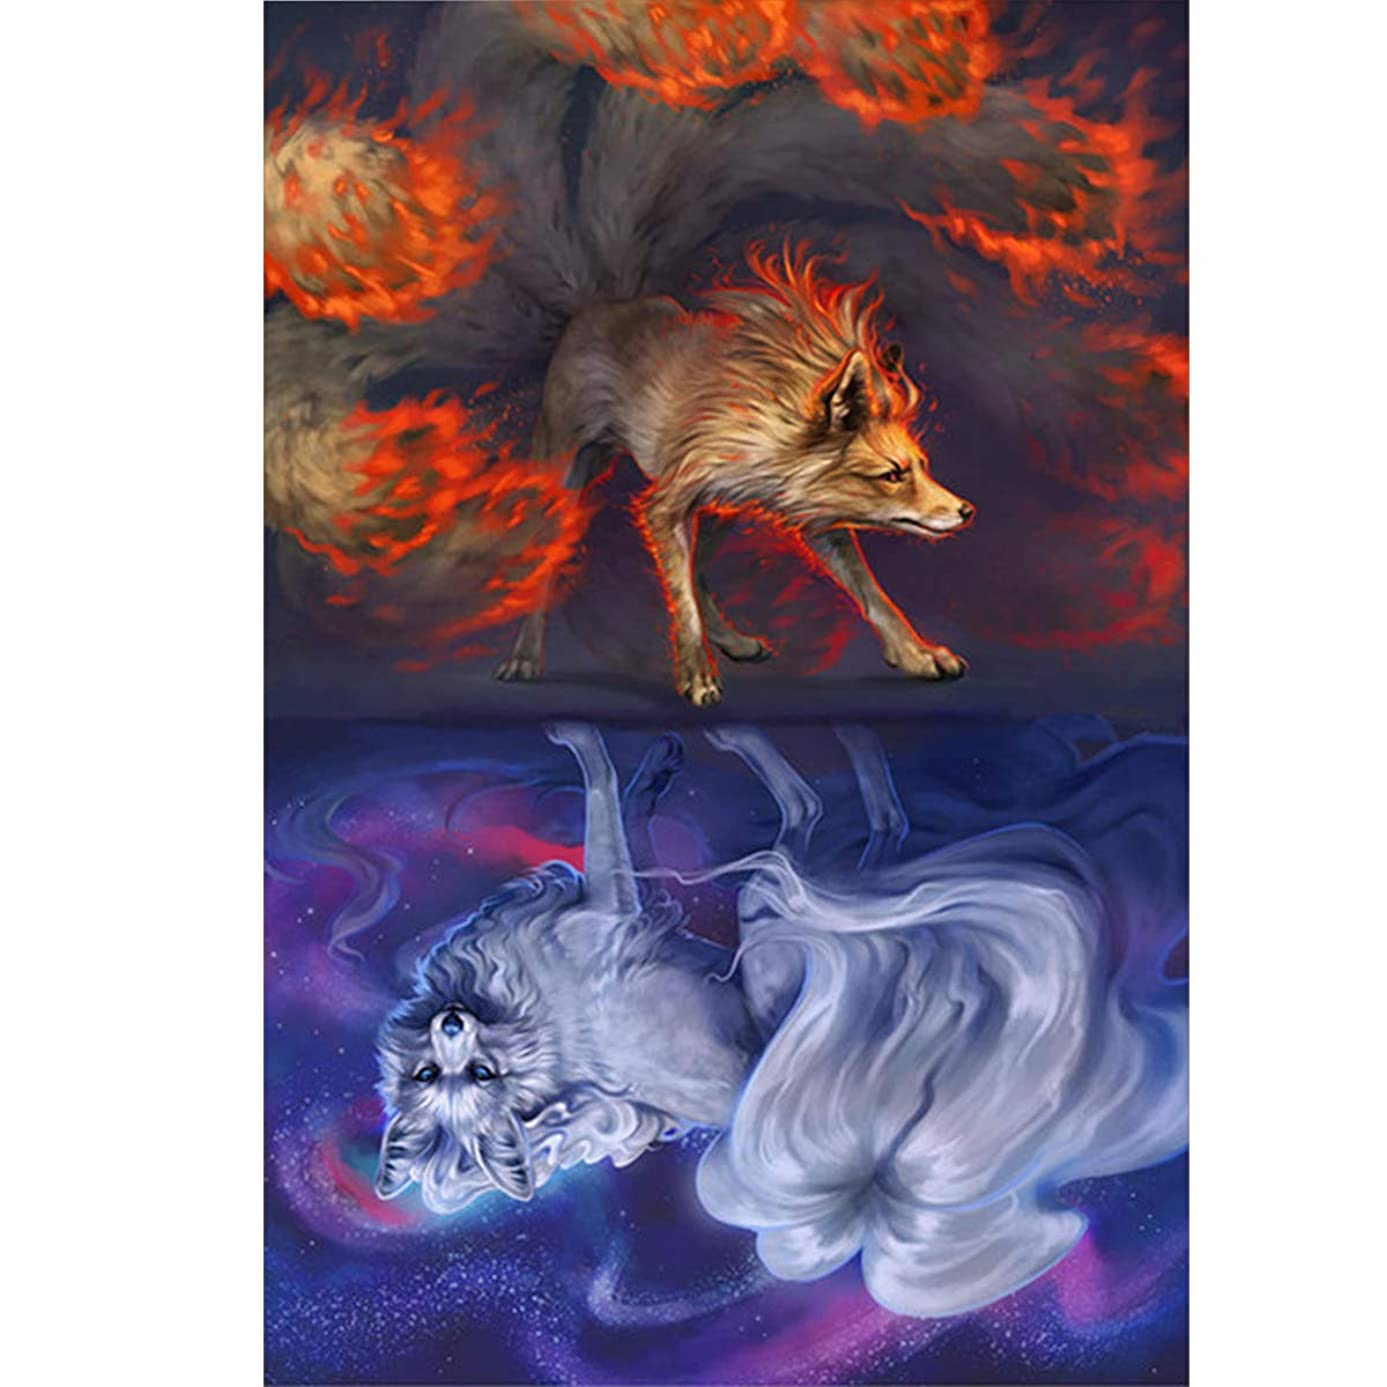 Diamond Painting Kit for Adults,5D Diamond Painting Full Drill Foxes Diamond Embroidery Pictures Arts Craft Home Wall Decor 12x16 inch(30x40cm)